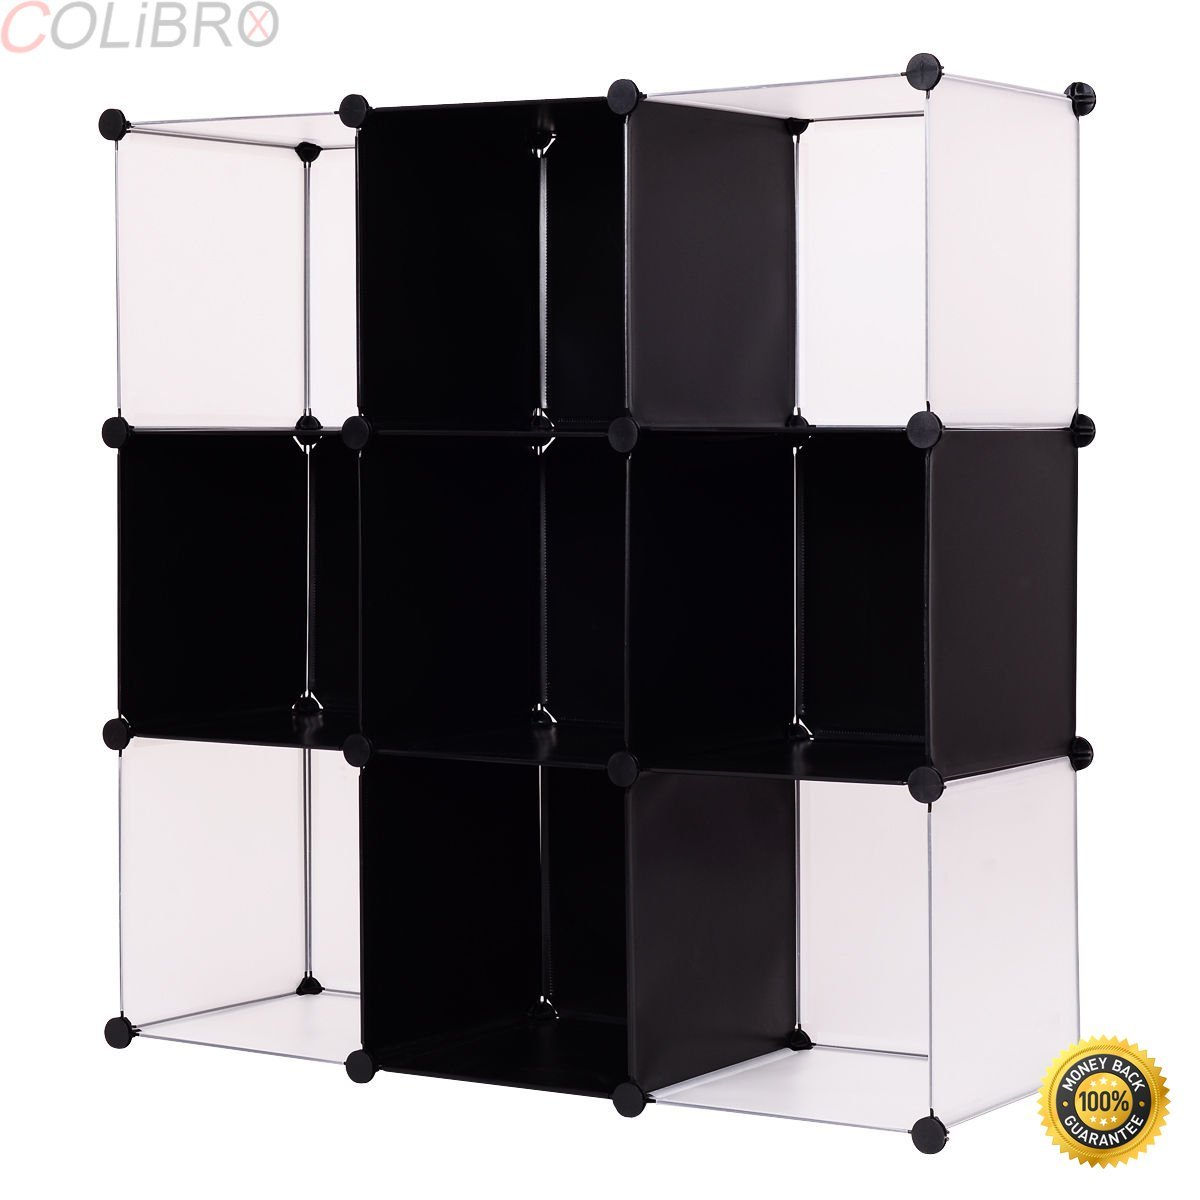 COLIBROX--3 Tier 9 Cubic Bookcase Storage Cabinet Shelf Closet Organizer Home Furni New. The eco-friendly, no formaldehyde PP plastic panels. It is a good decorative item for your house.